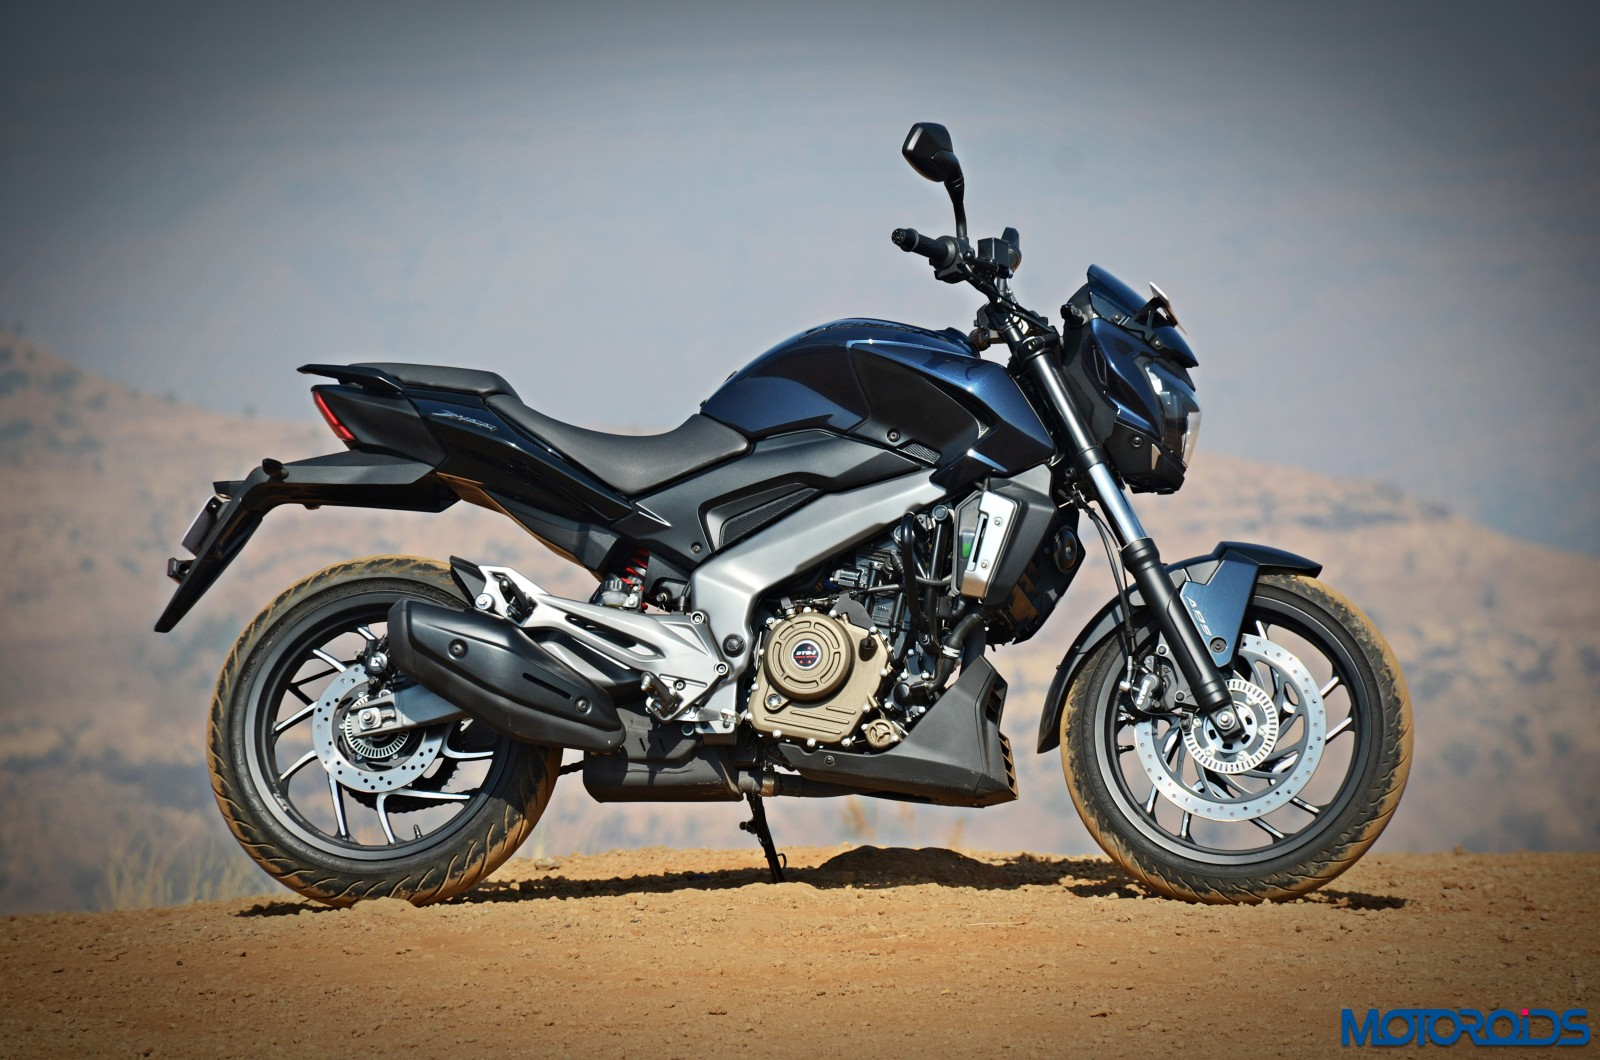 Bajaj Dominar 400 Exhaustive Performance Review Not A